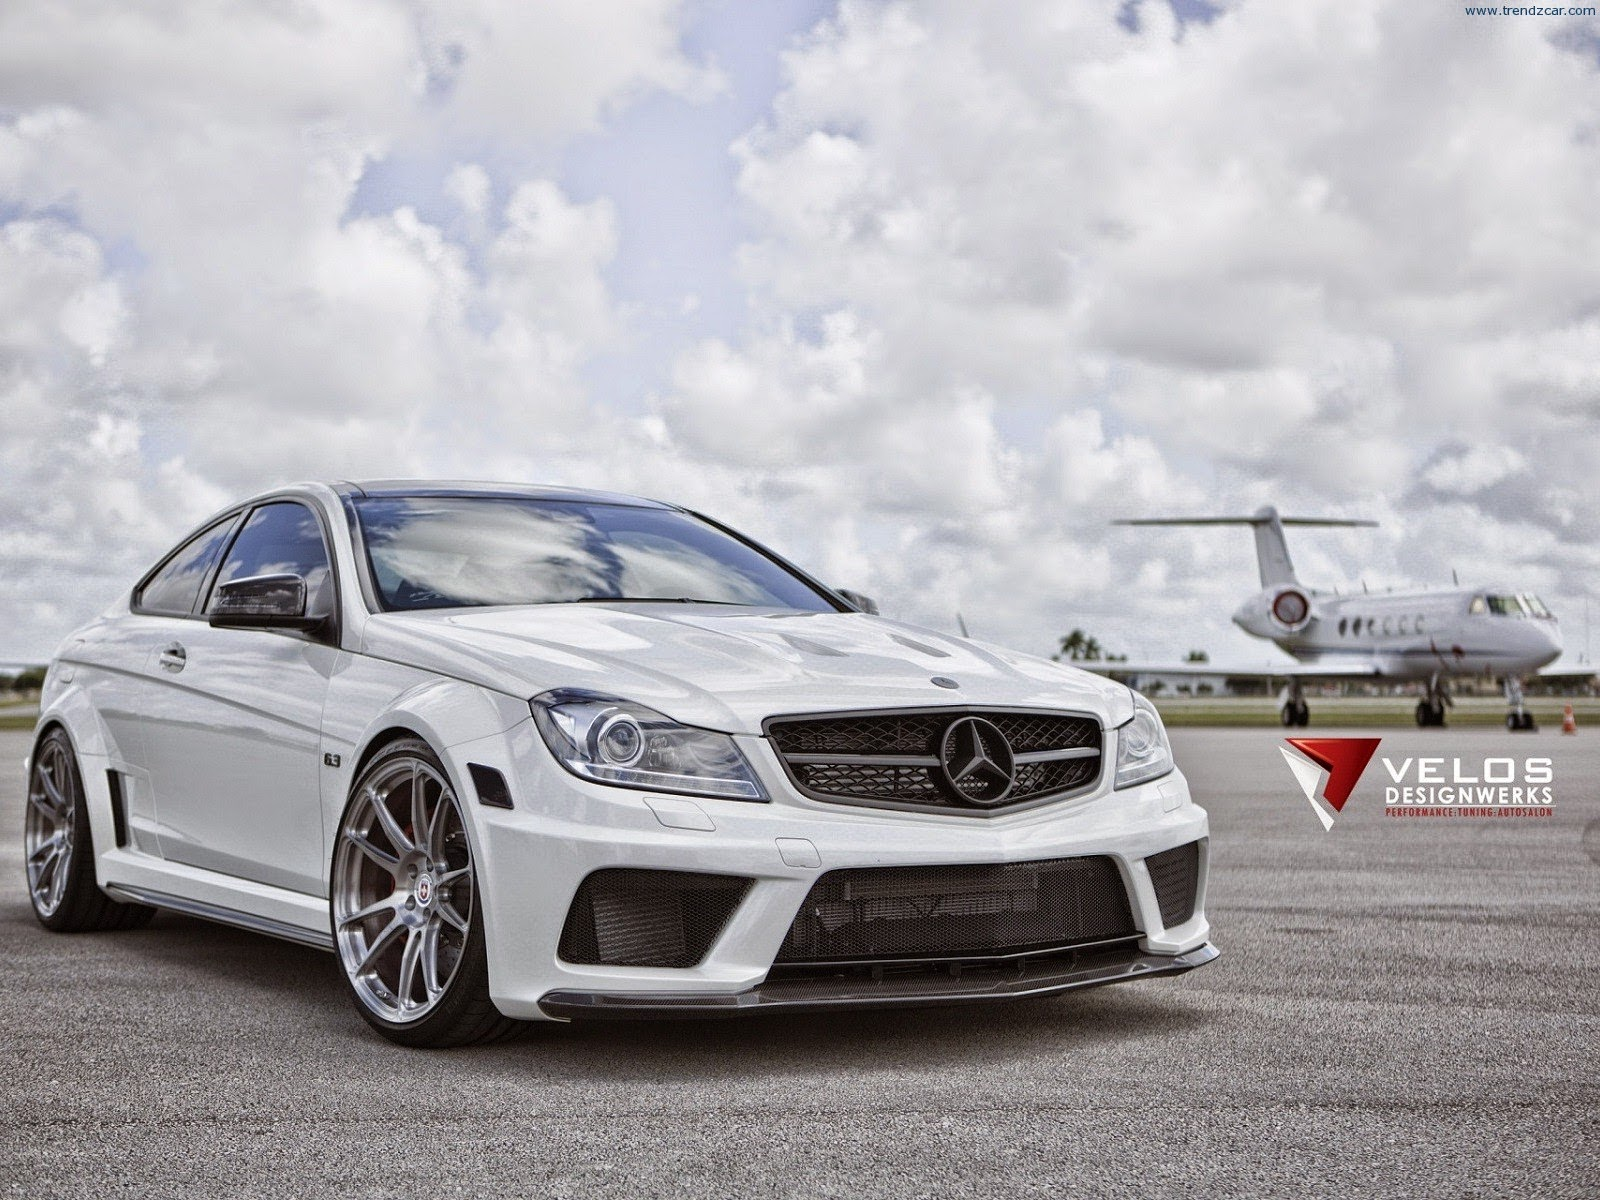 Mercedes benz c63 amg black series by velos designwerks for C63 mercedes benz